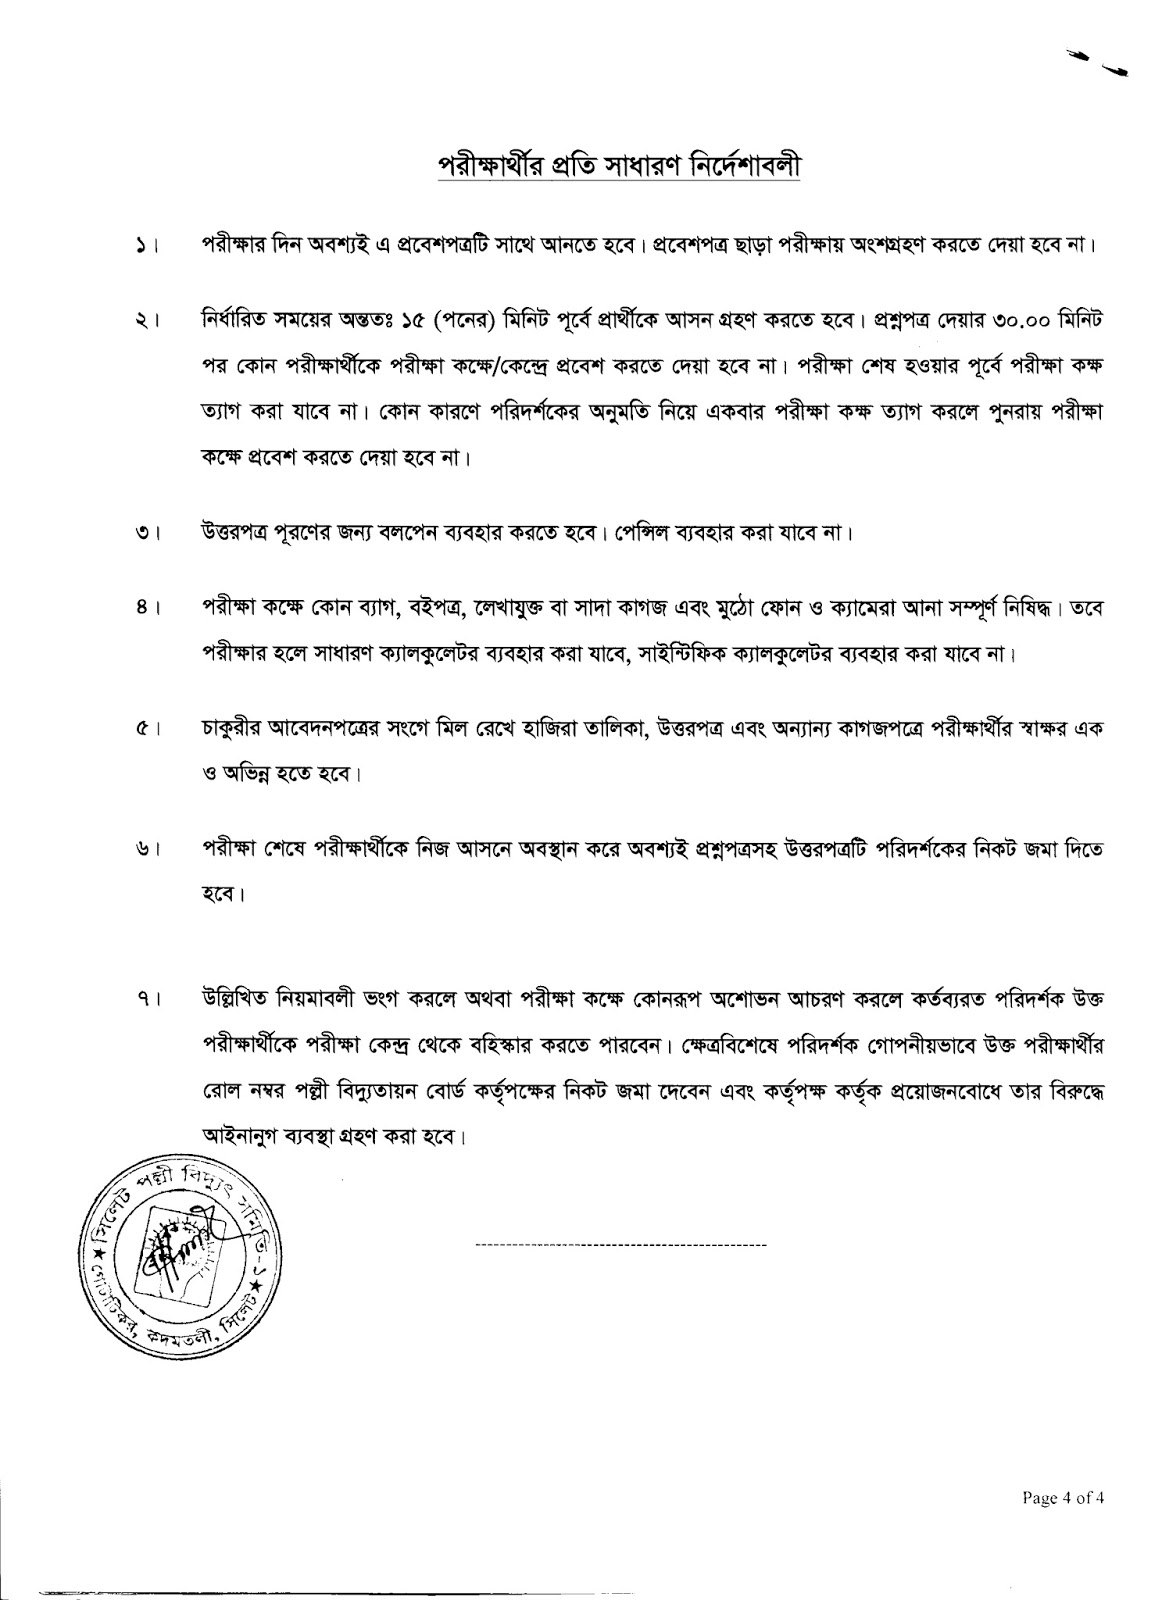 Sylhet Palli Bidyut Samity-1 Job Application Form